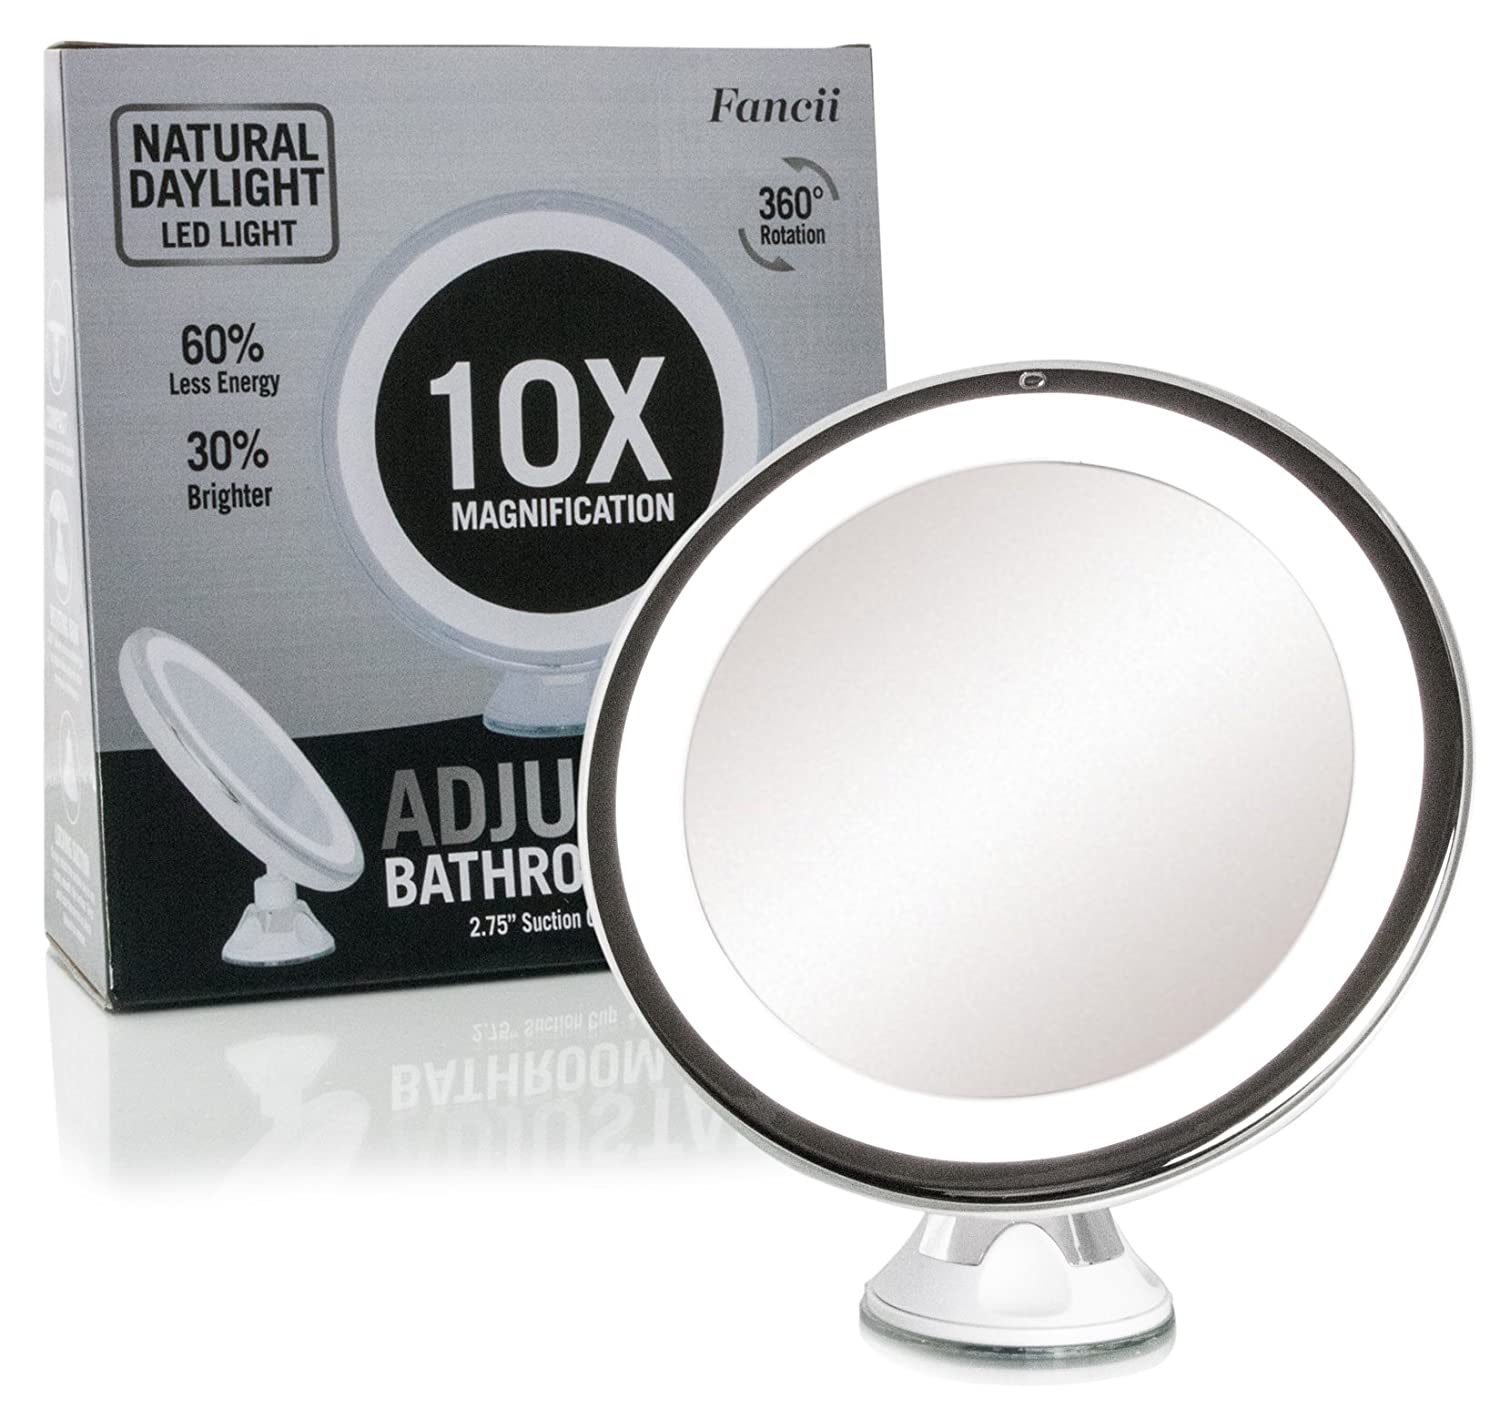 "Fancii Daylight LED 10X Magnifying Makeup Mirror - 8.0"" Large Lighted Travel Vanity Mirror - Dimmable Light, Cordless, Battery"